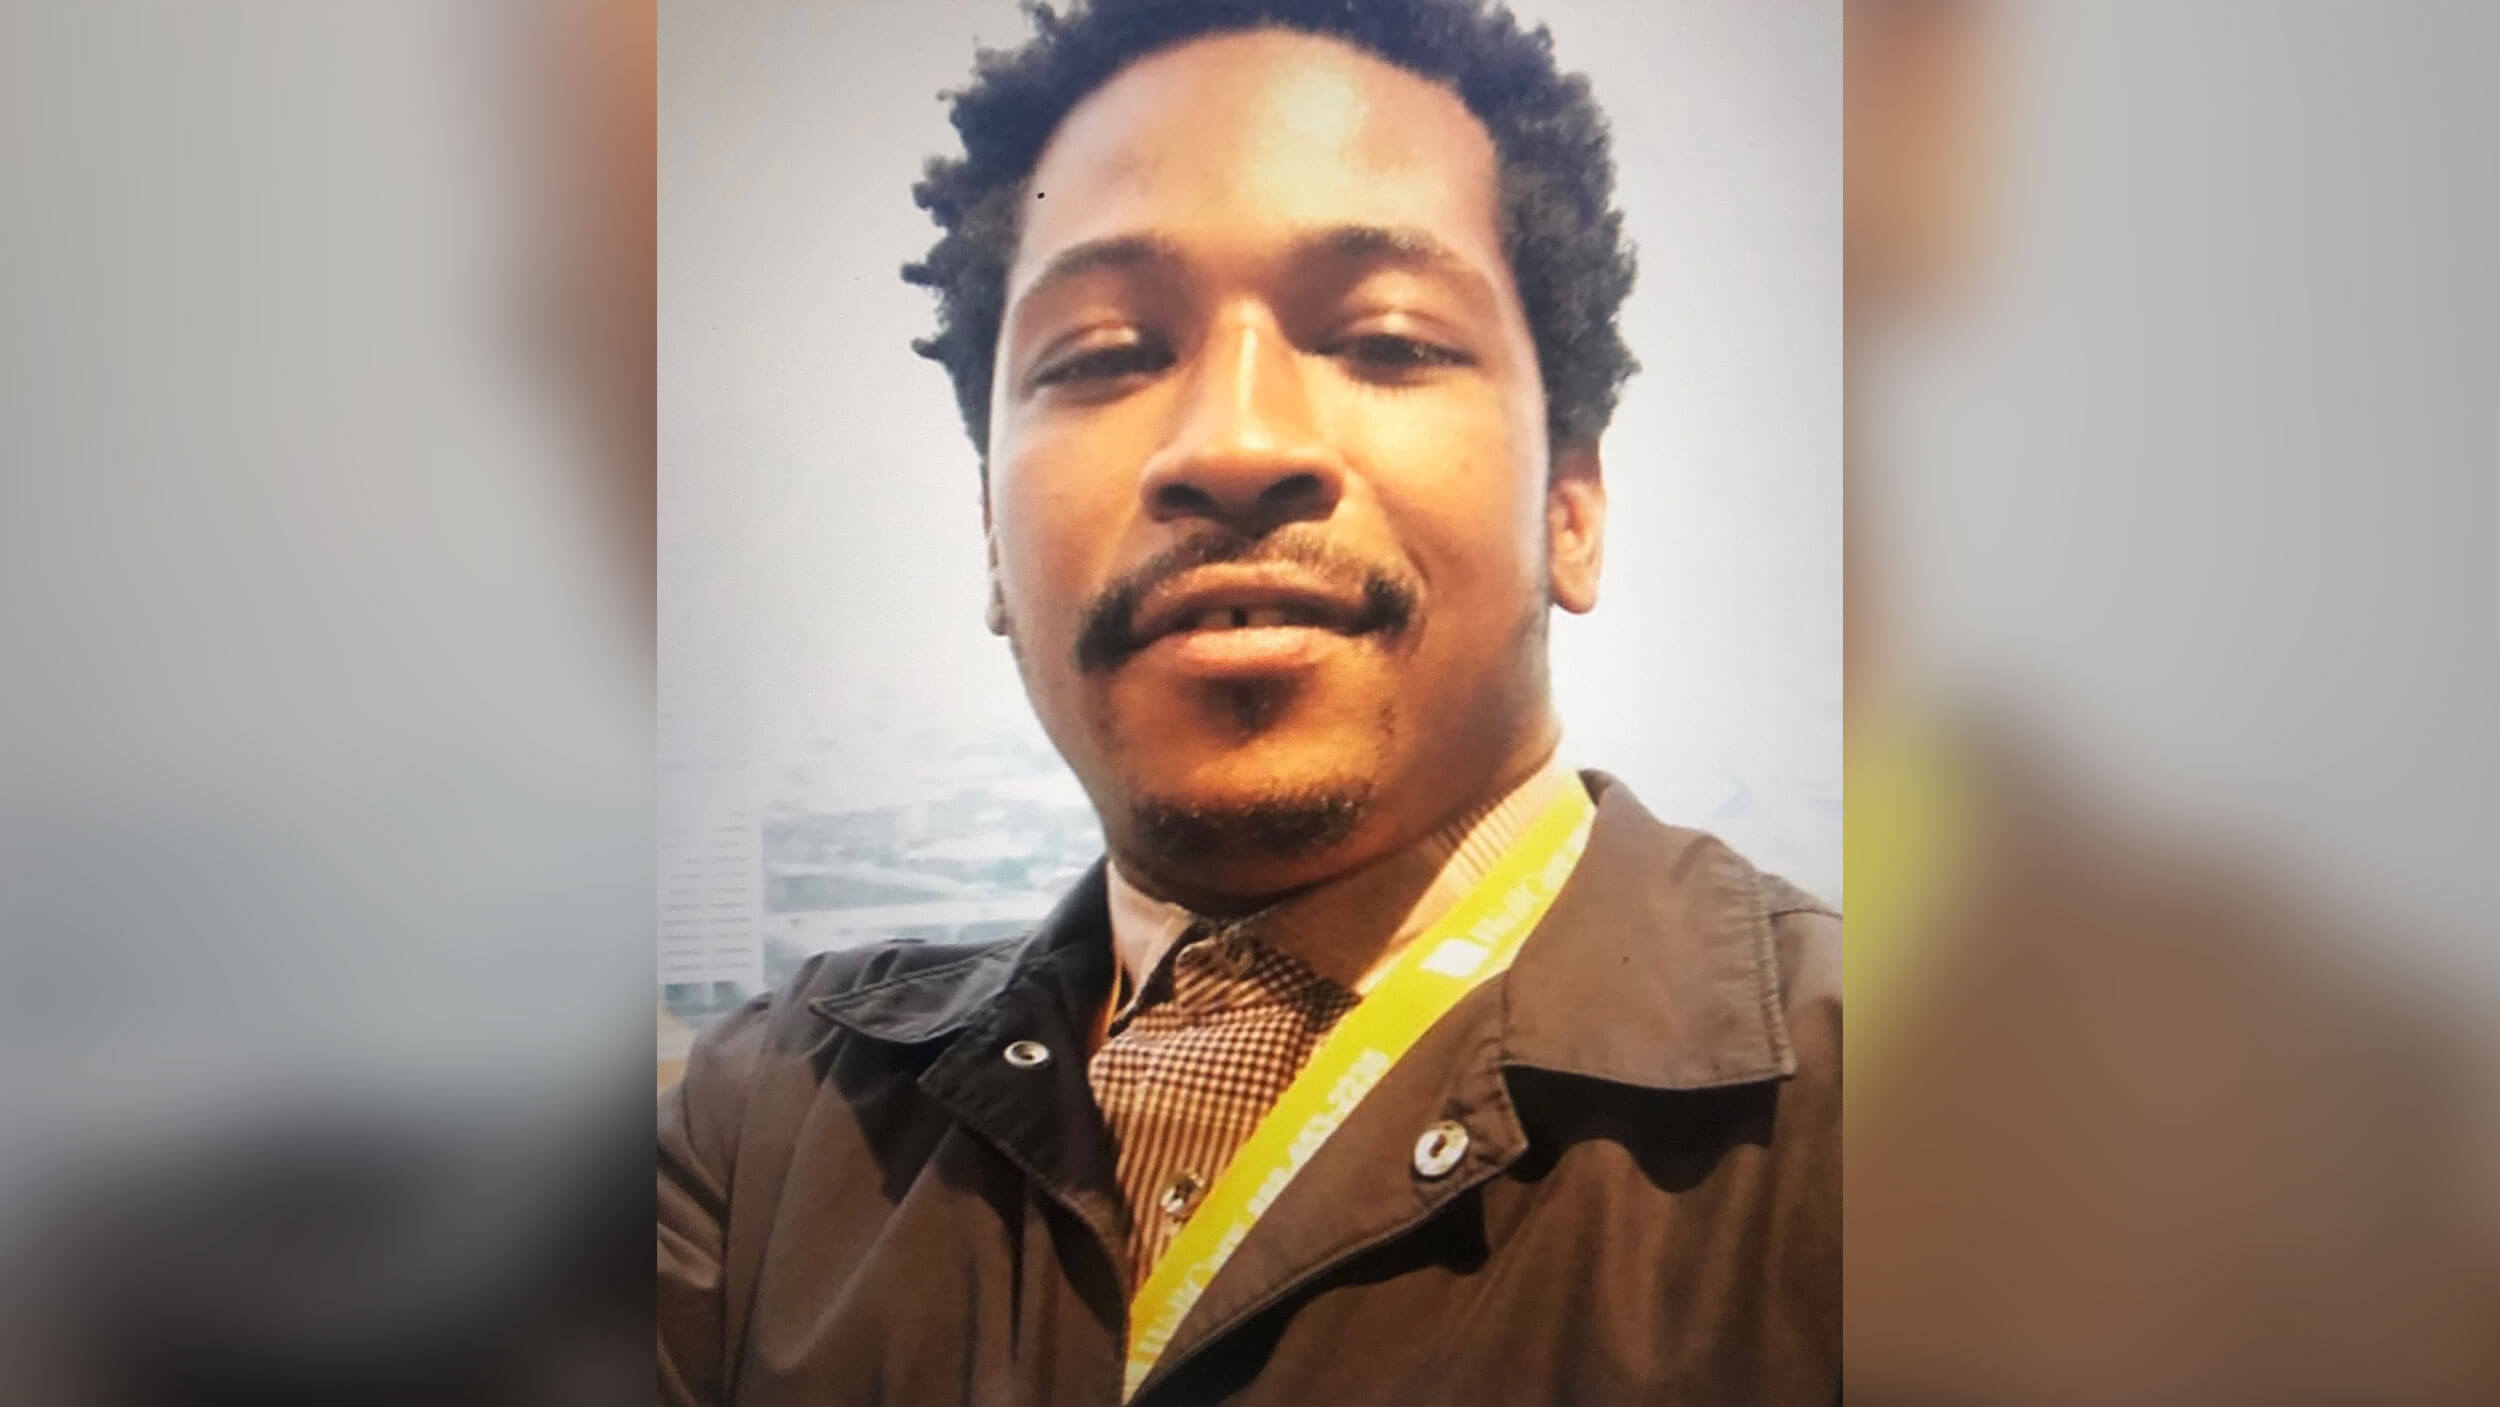 Rayshard Brooks was shot by one of the white cops who attempted to put him in custody